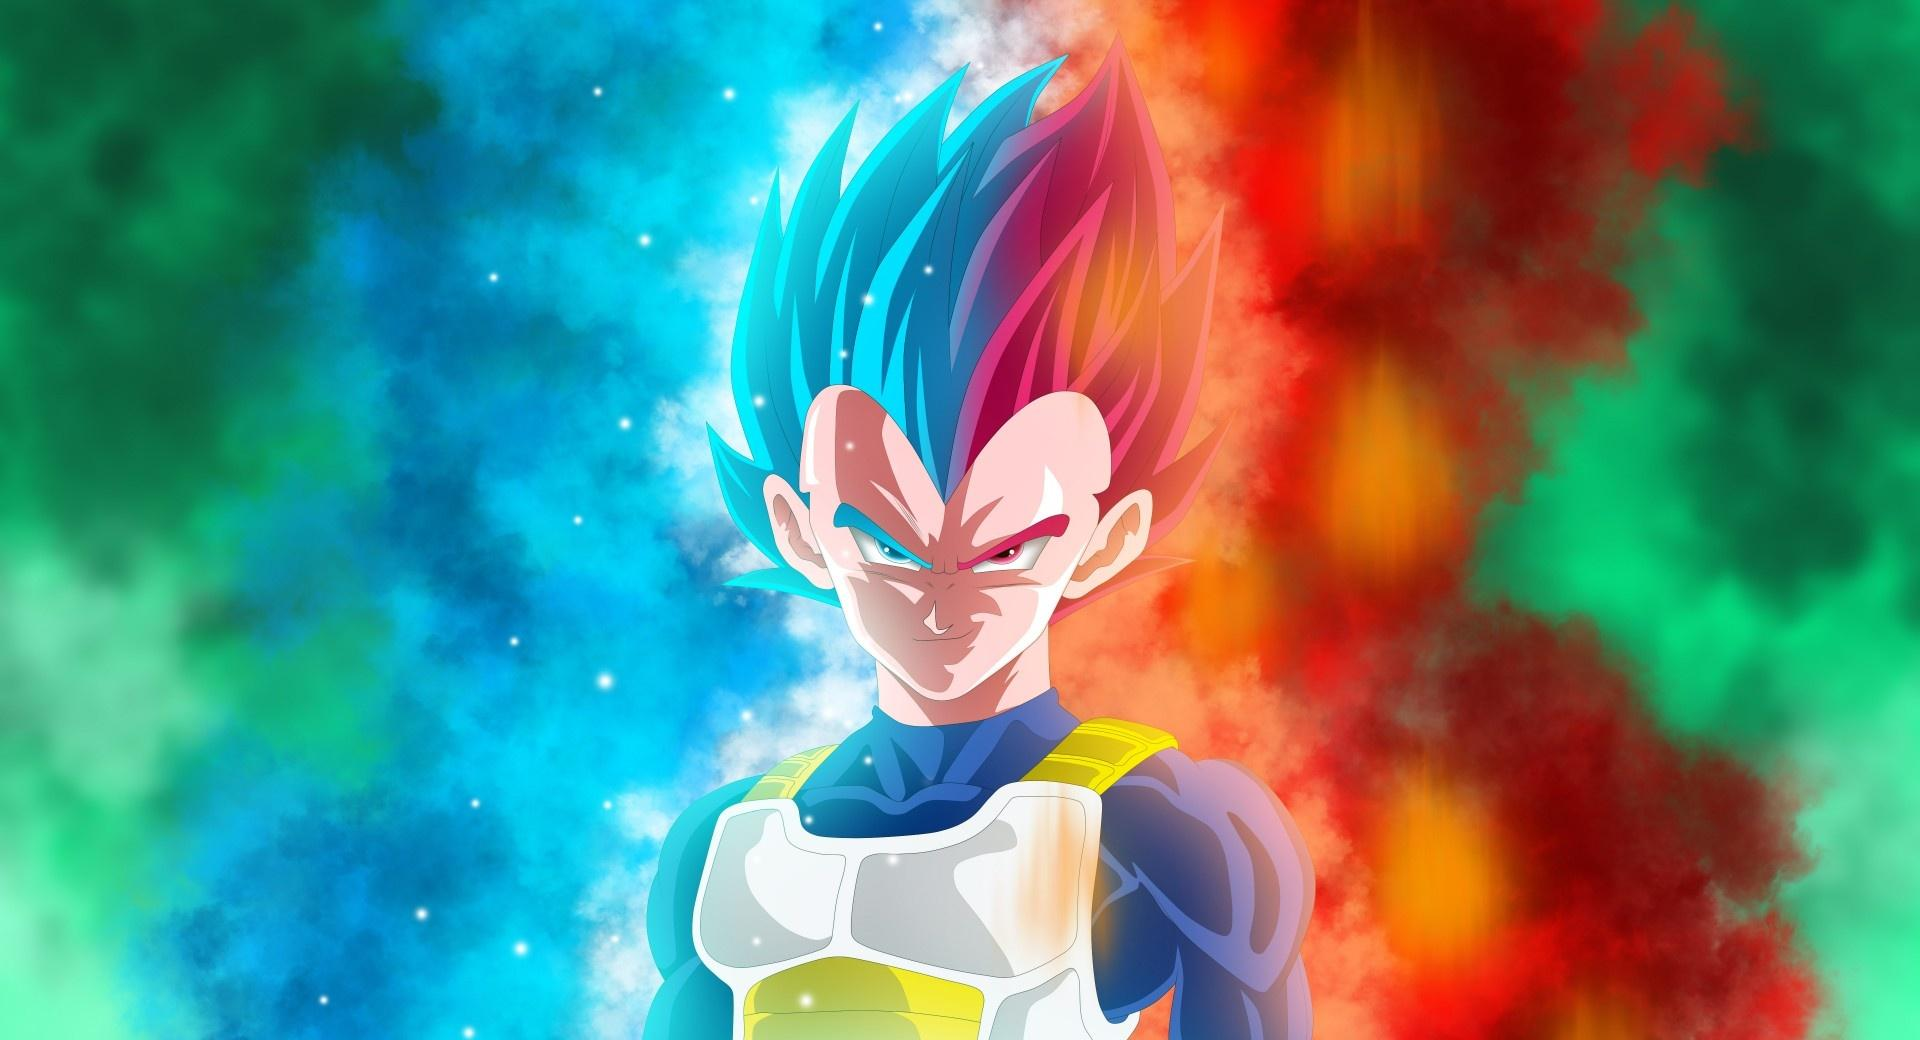 Vegeta, Dragon Ball Super at 320 x 480 iPhone size wallpapers HD quality